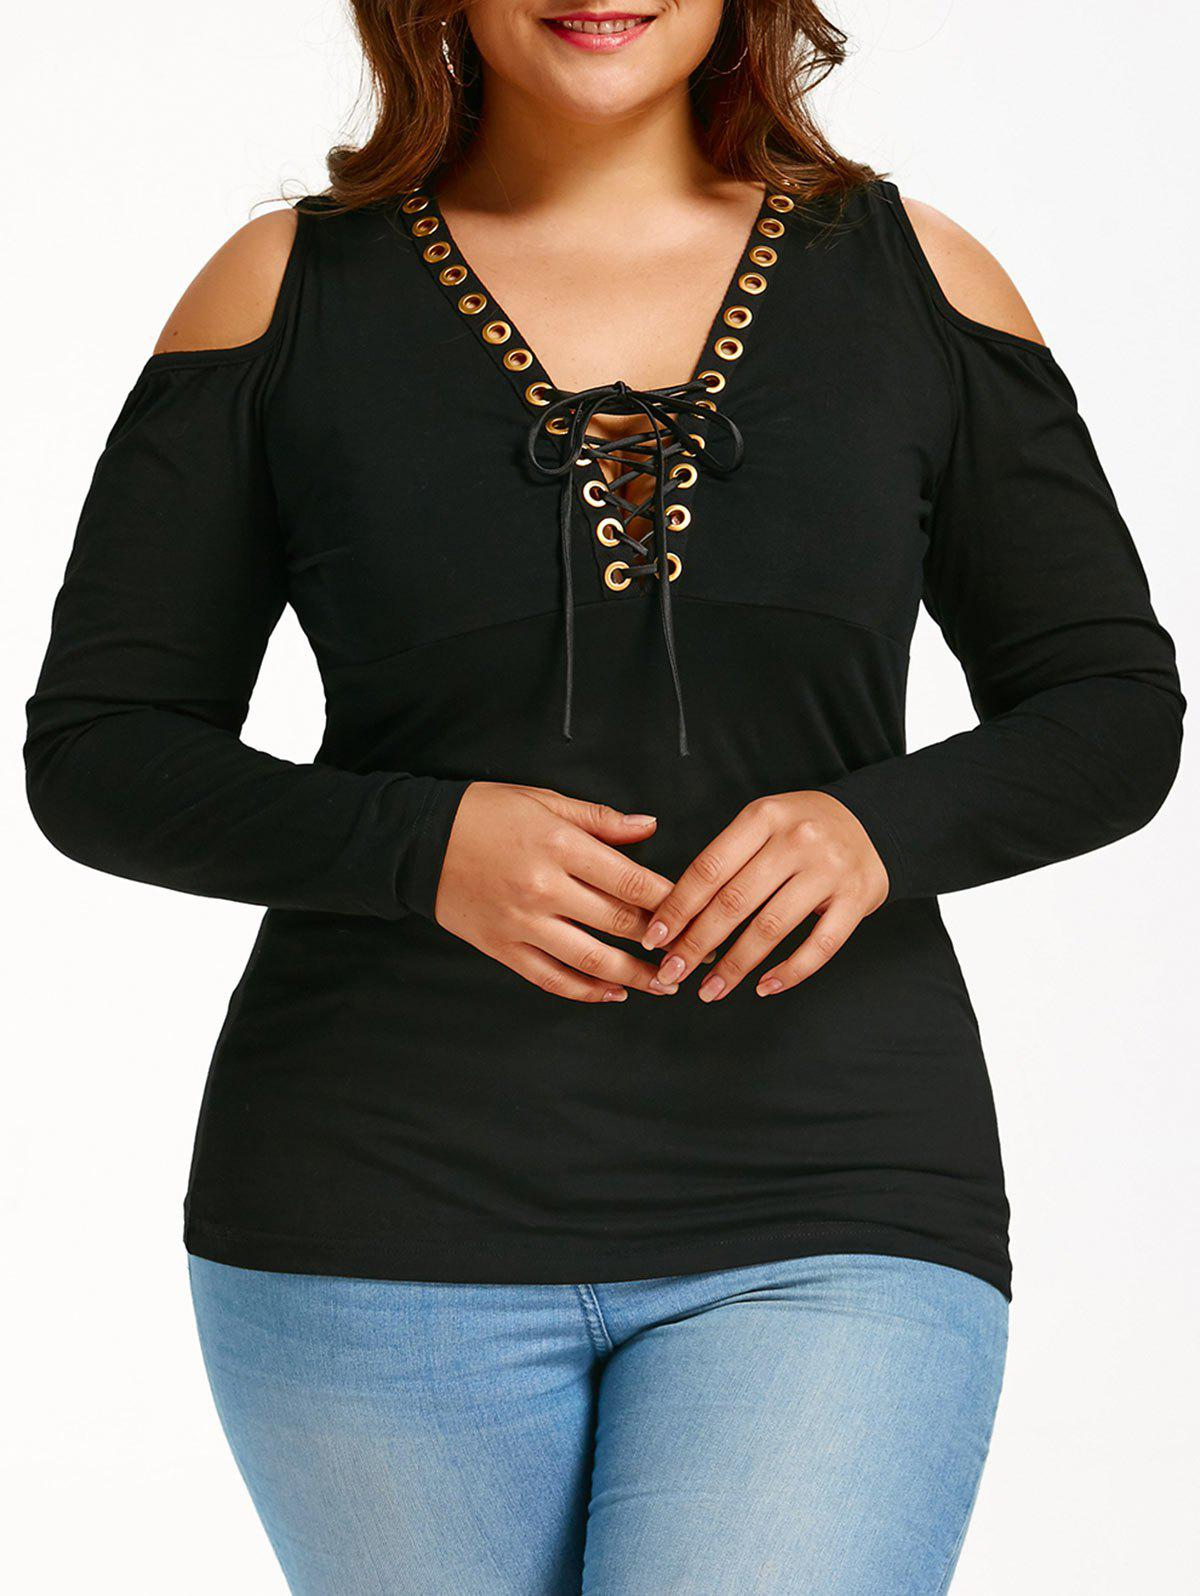 Lace Up Plus Size Cold Shoulder T-shirtWOMEN<br><br>Size: 5XL; Color: BLACK; Material: Polyester,Spandex; Shirt Length: Regular; Sleeve Length: Full; Collar: Plunging Neck; Style: Fashion; Season: Fall,Spring; Sleeve Type: Cold Shoulder; Embellishment: Criss-Cross; Pattern Type: Solid; Elasticity: Elastic; Weight: 0.3000kg; Package Contents: 1 x T-shirt;